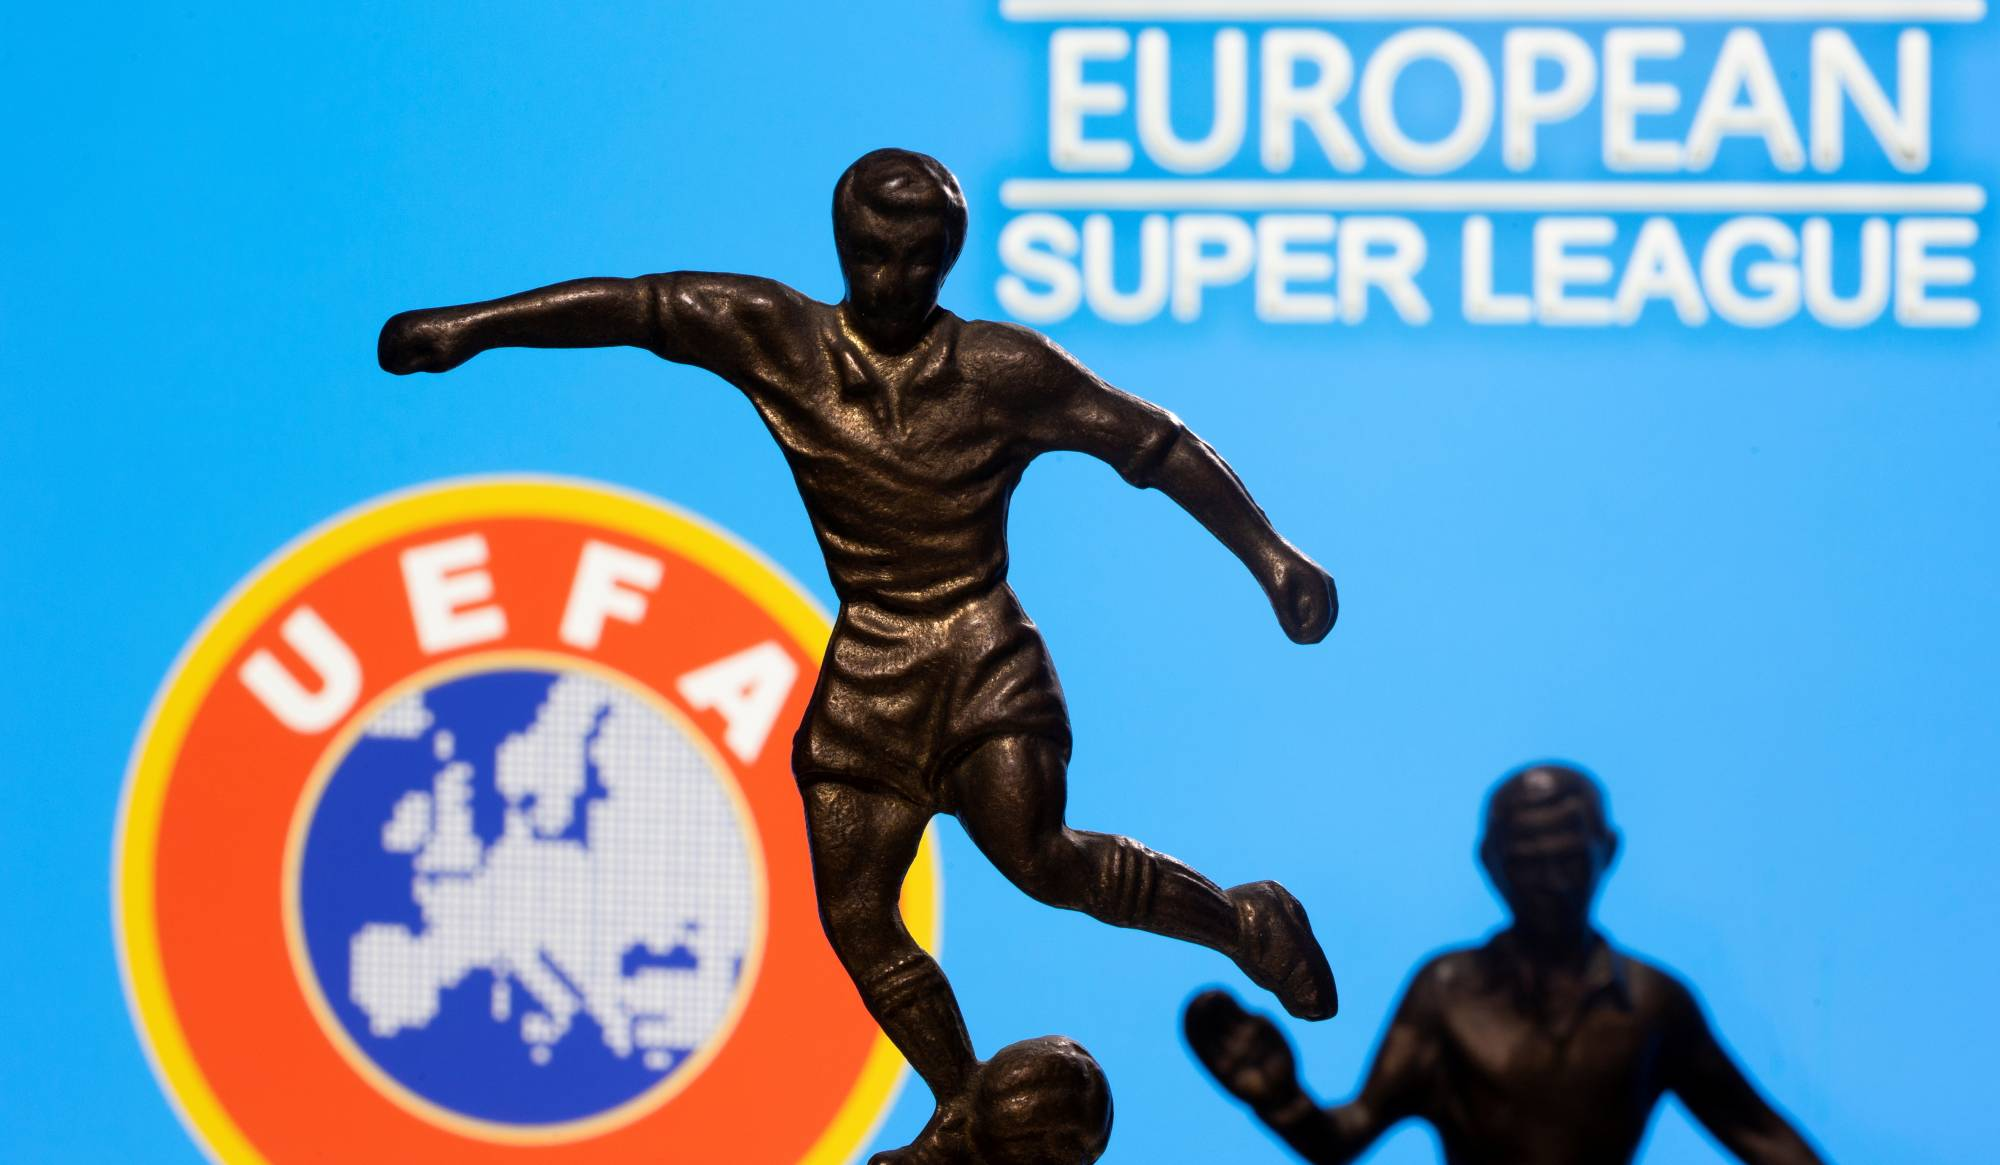 Metal figures of soccer players are seen in front of the words 'European Super League' and the UEFA logo in an illustration taken April 20.   REUTERS